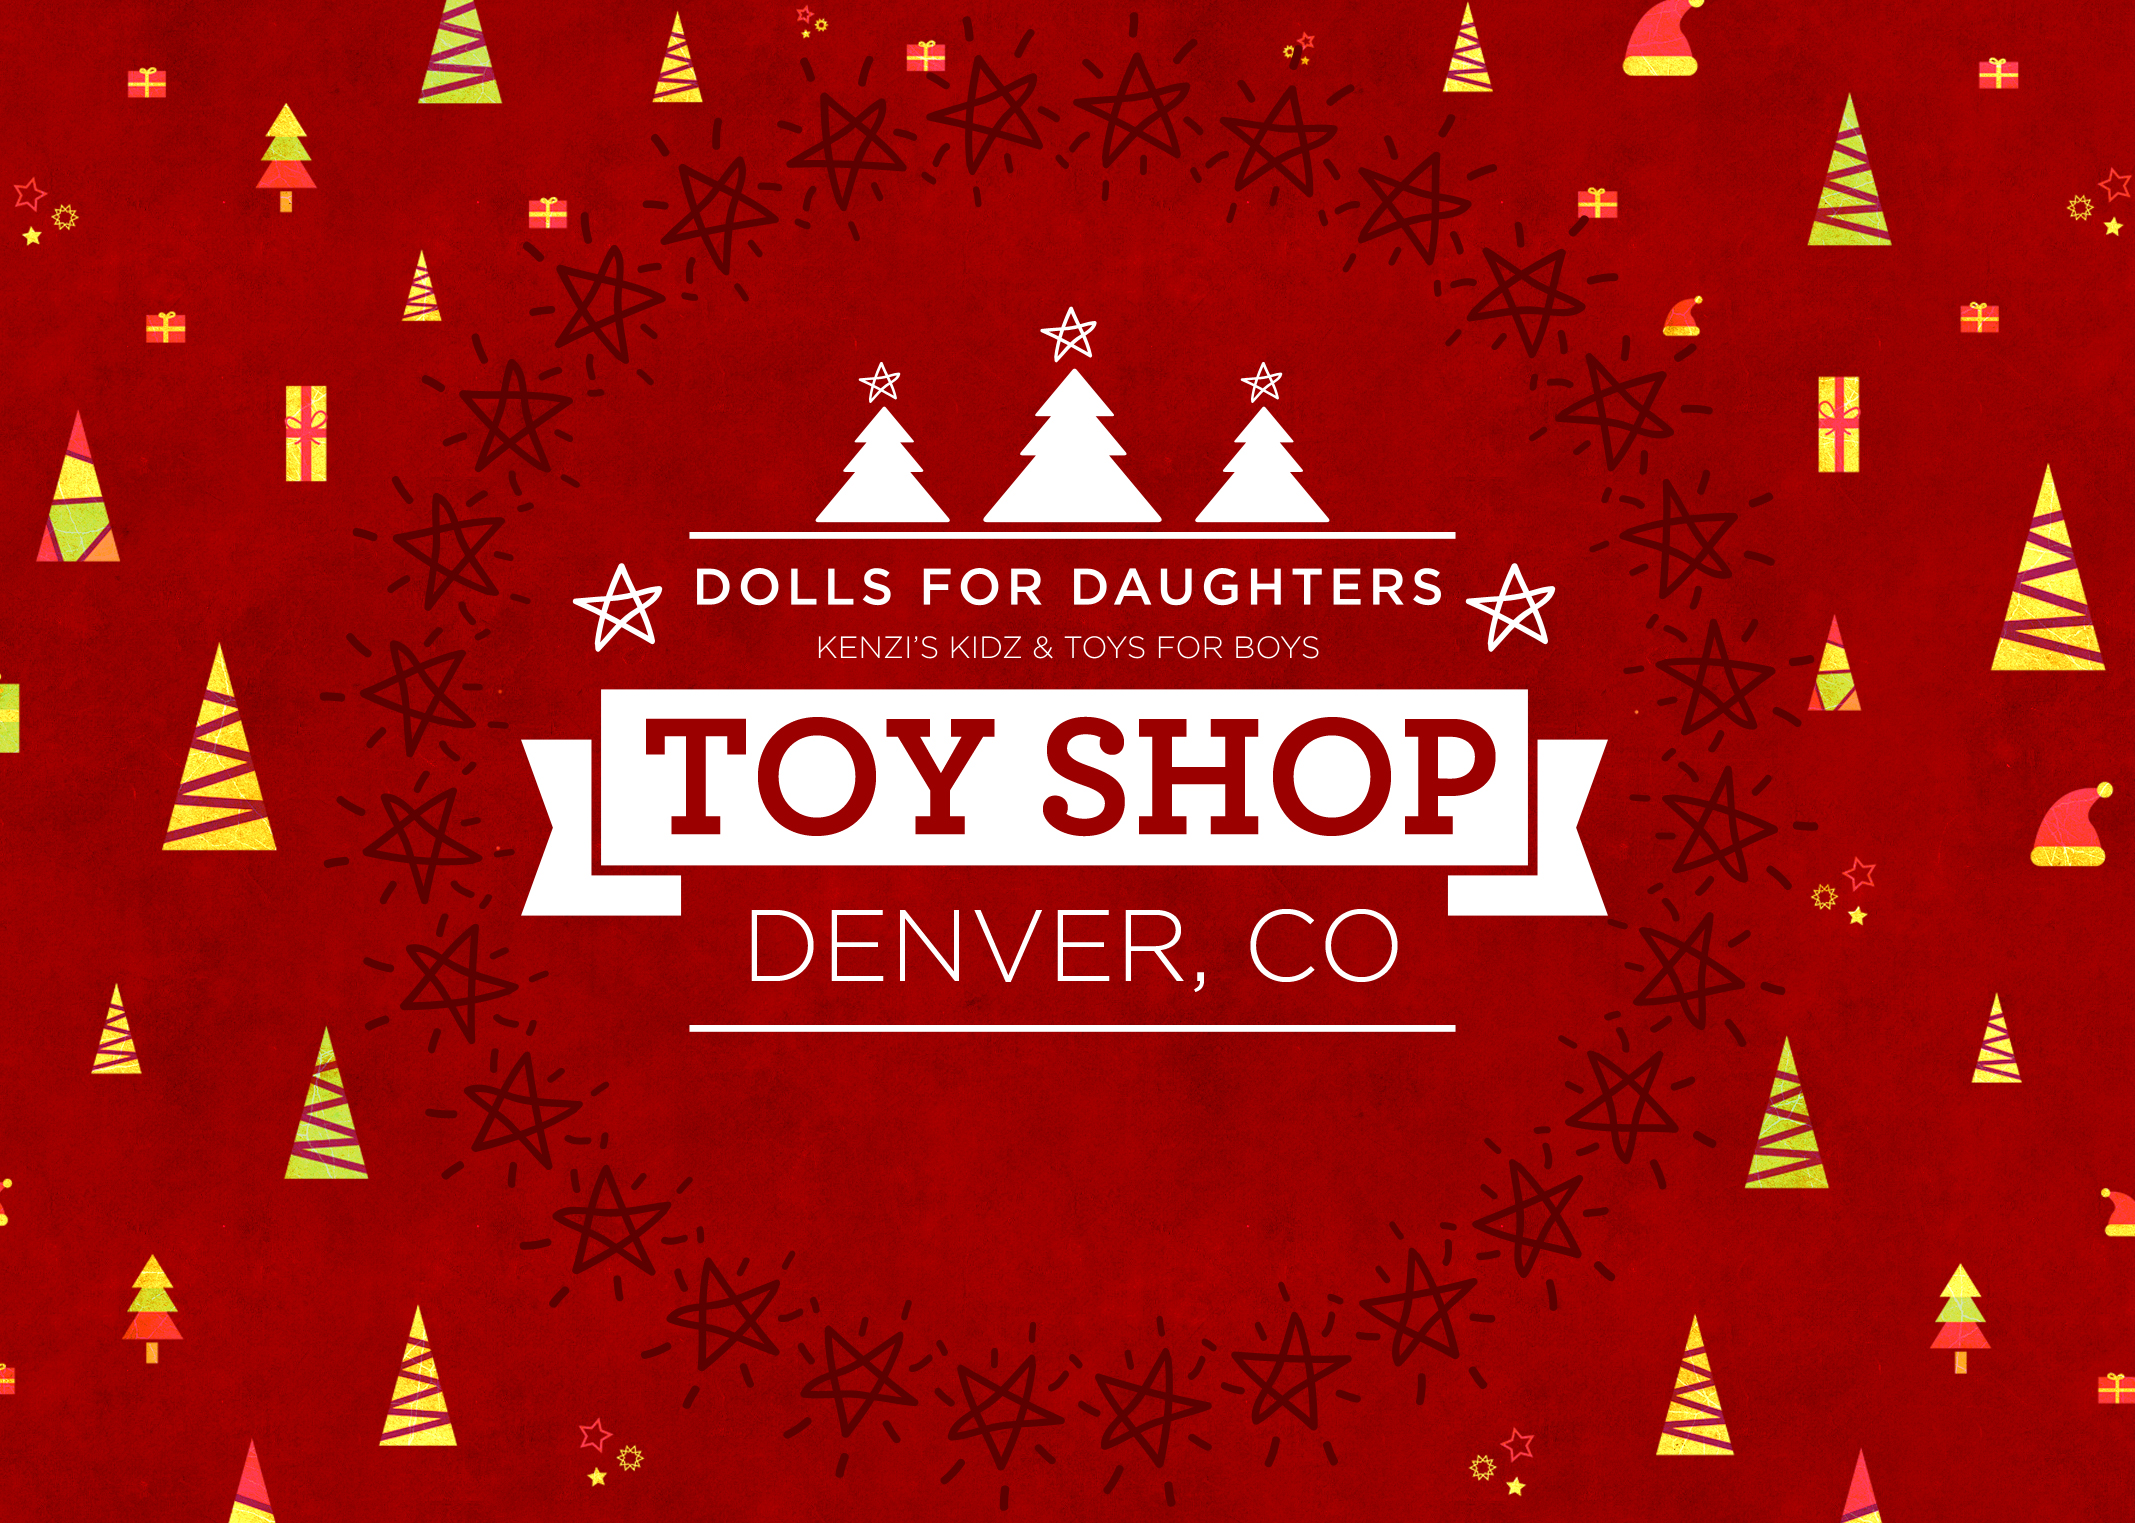 Toy Shop Denver | Dolls for Daughters®